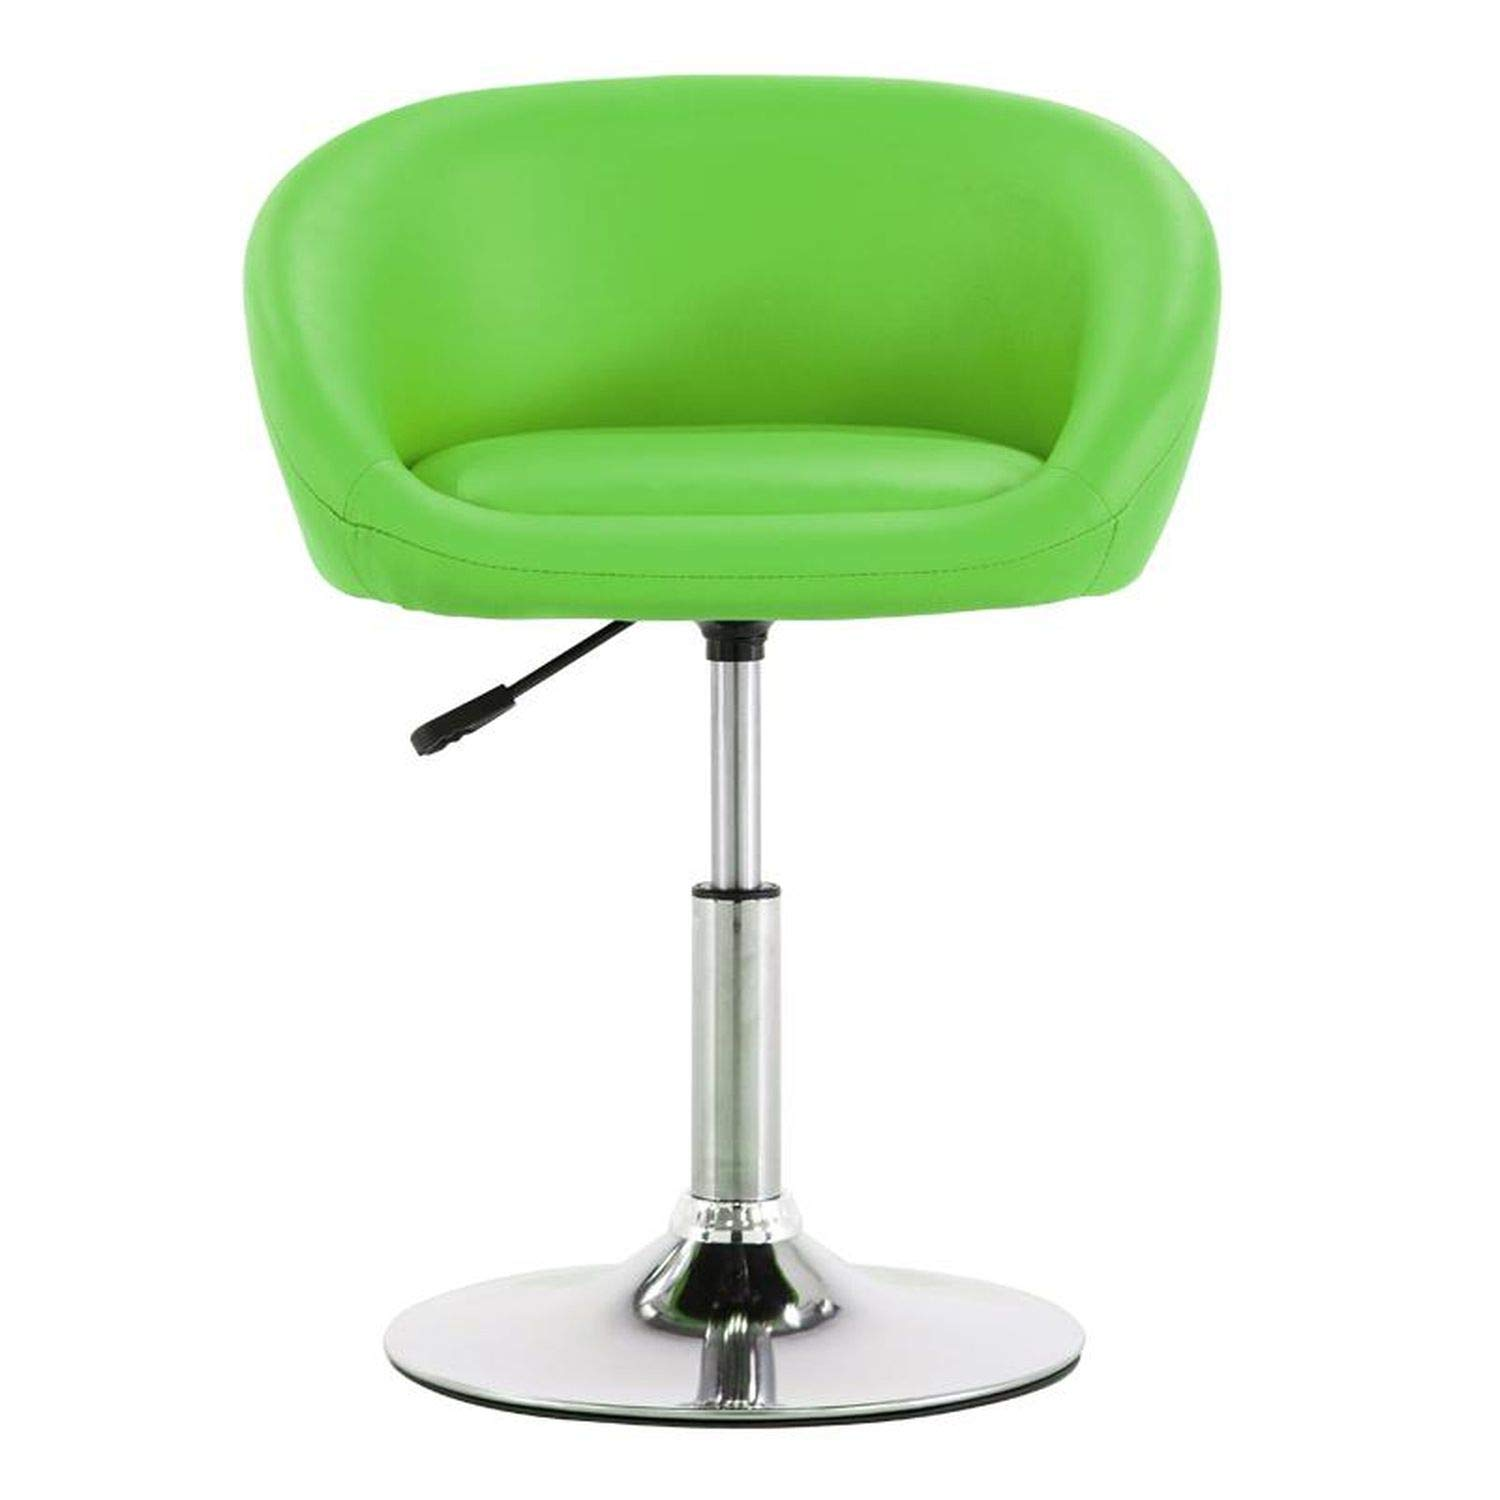 Style 9 one size Bar Chair Lift Chair Home Swivel Chair Nail Beauty Stool Back Makeup Chair Modern Minimalist High Stool,Style 17